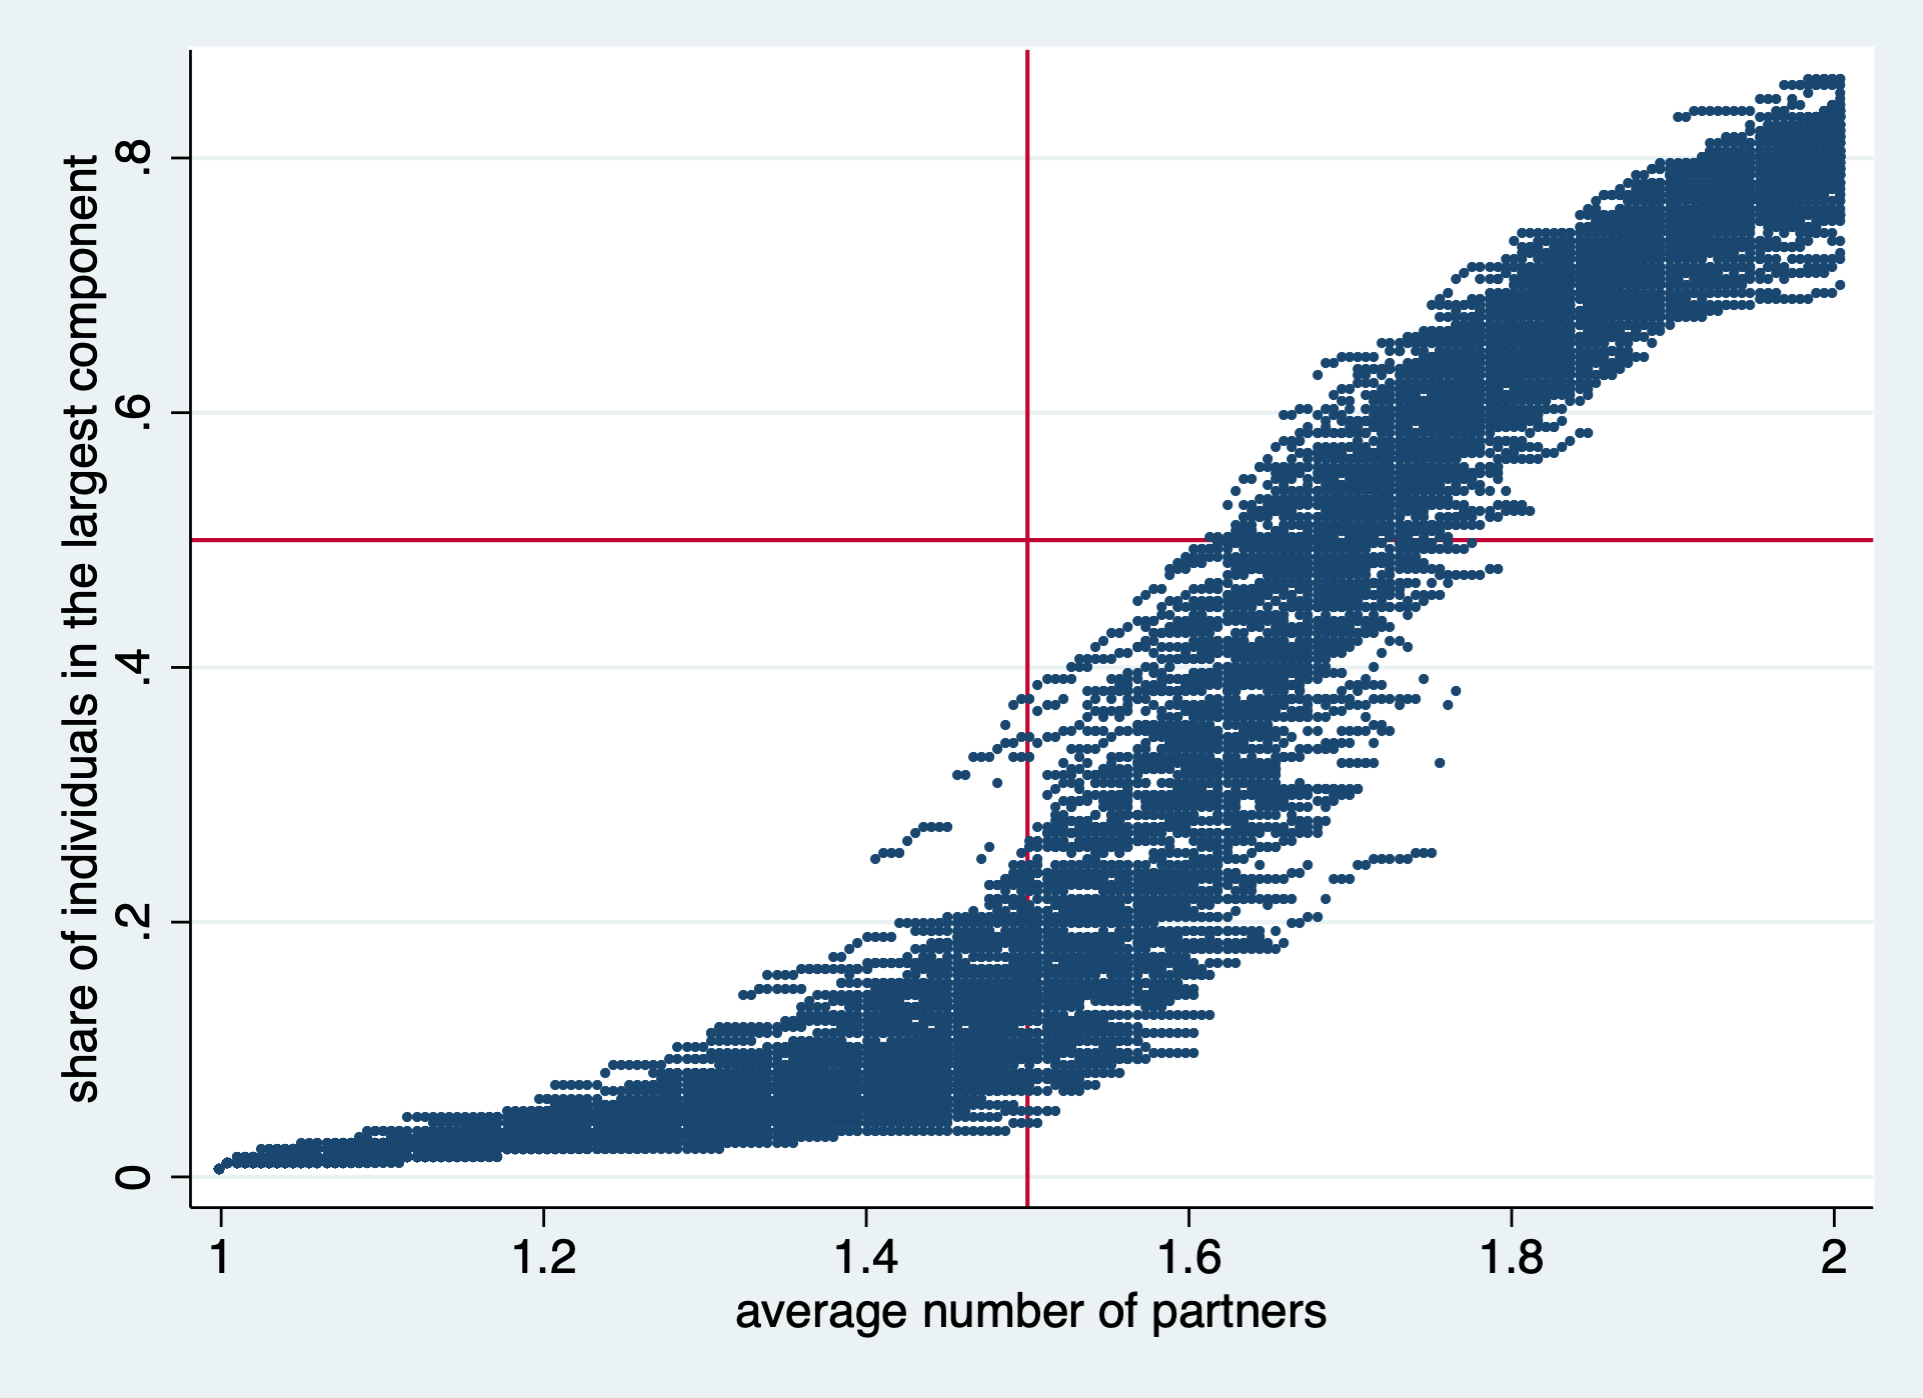 Phase transition in size of the giant component as the average number of partners crosses the 1.5 line